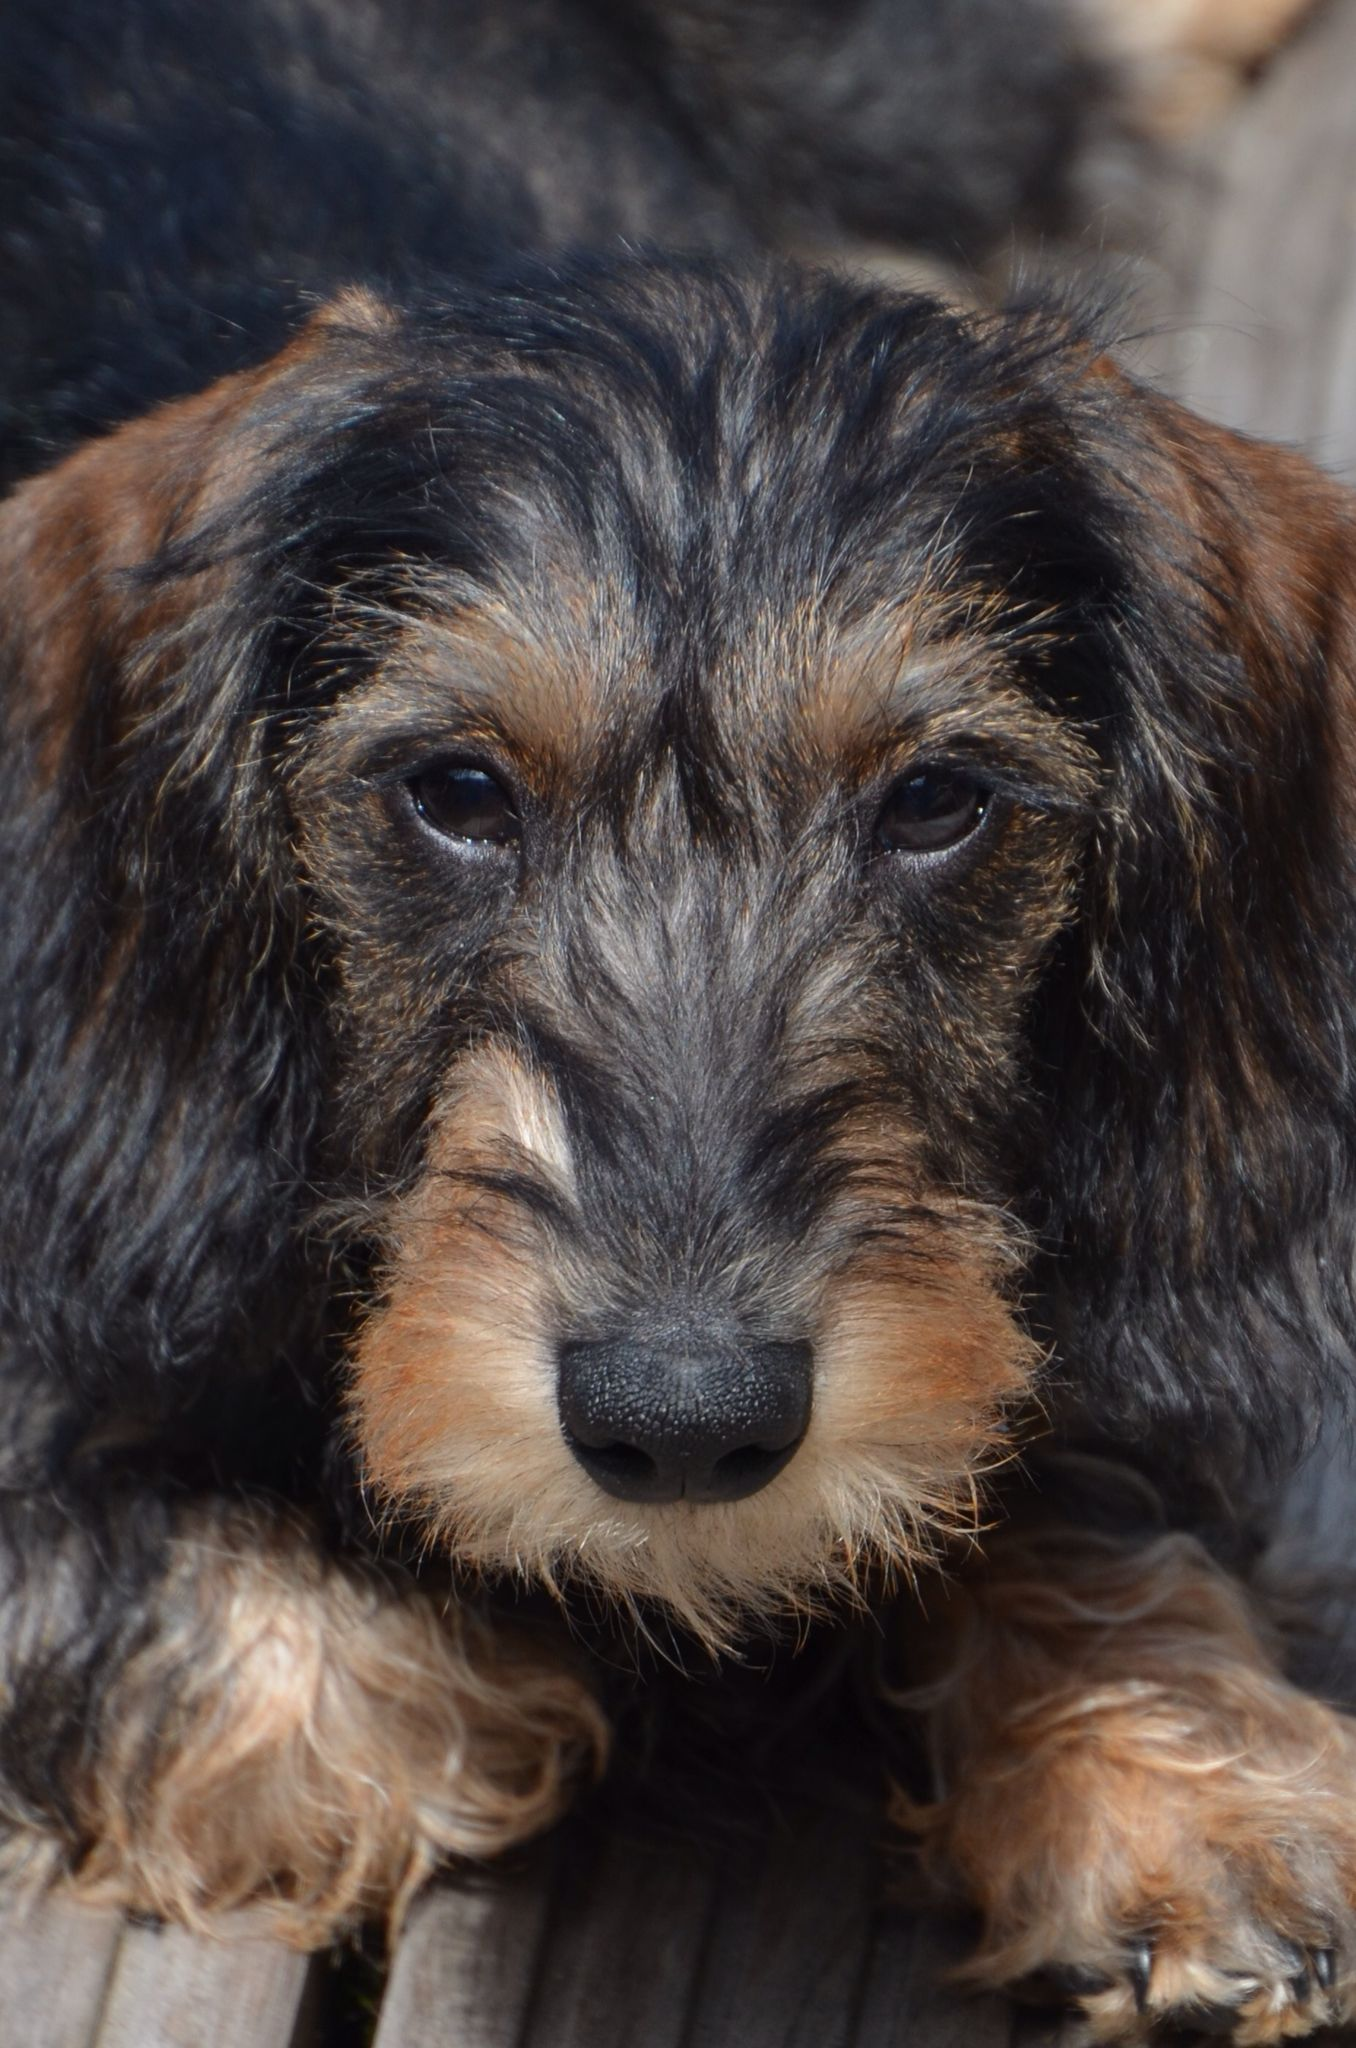 Meet Vic my wire haired dachshund. He is the cutest and smartest dog ...